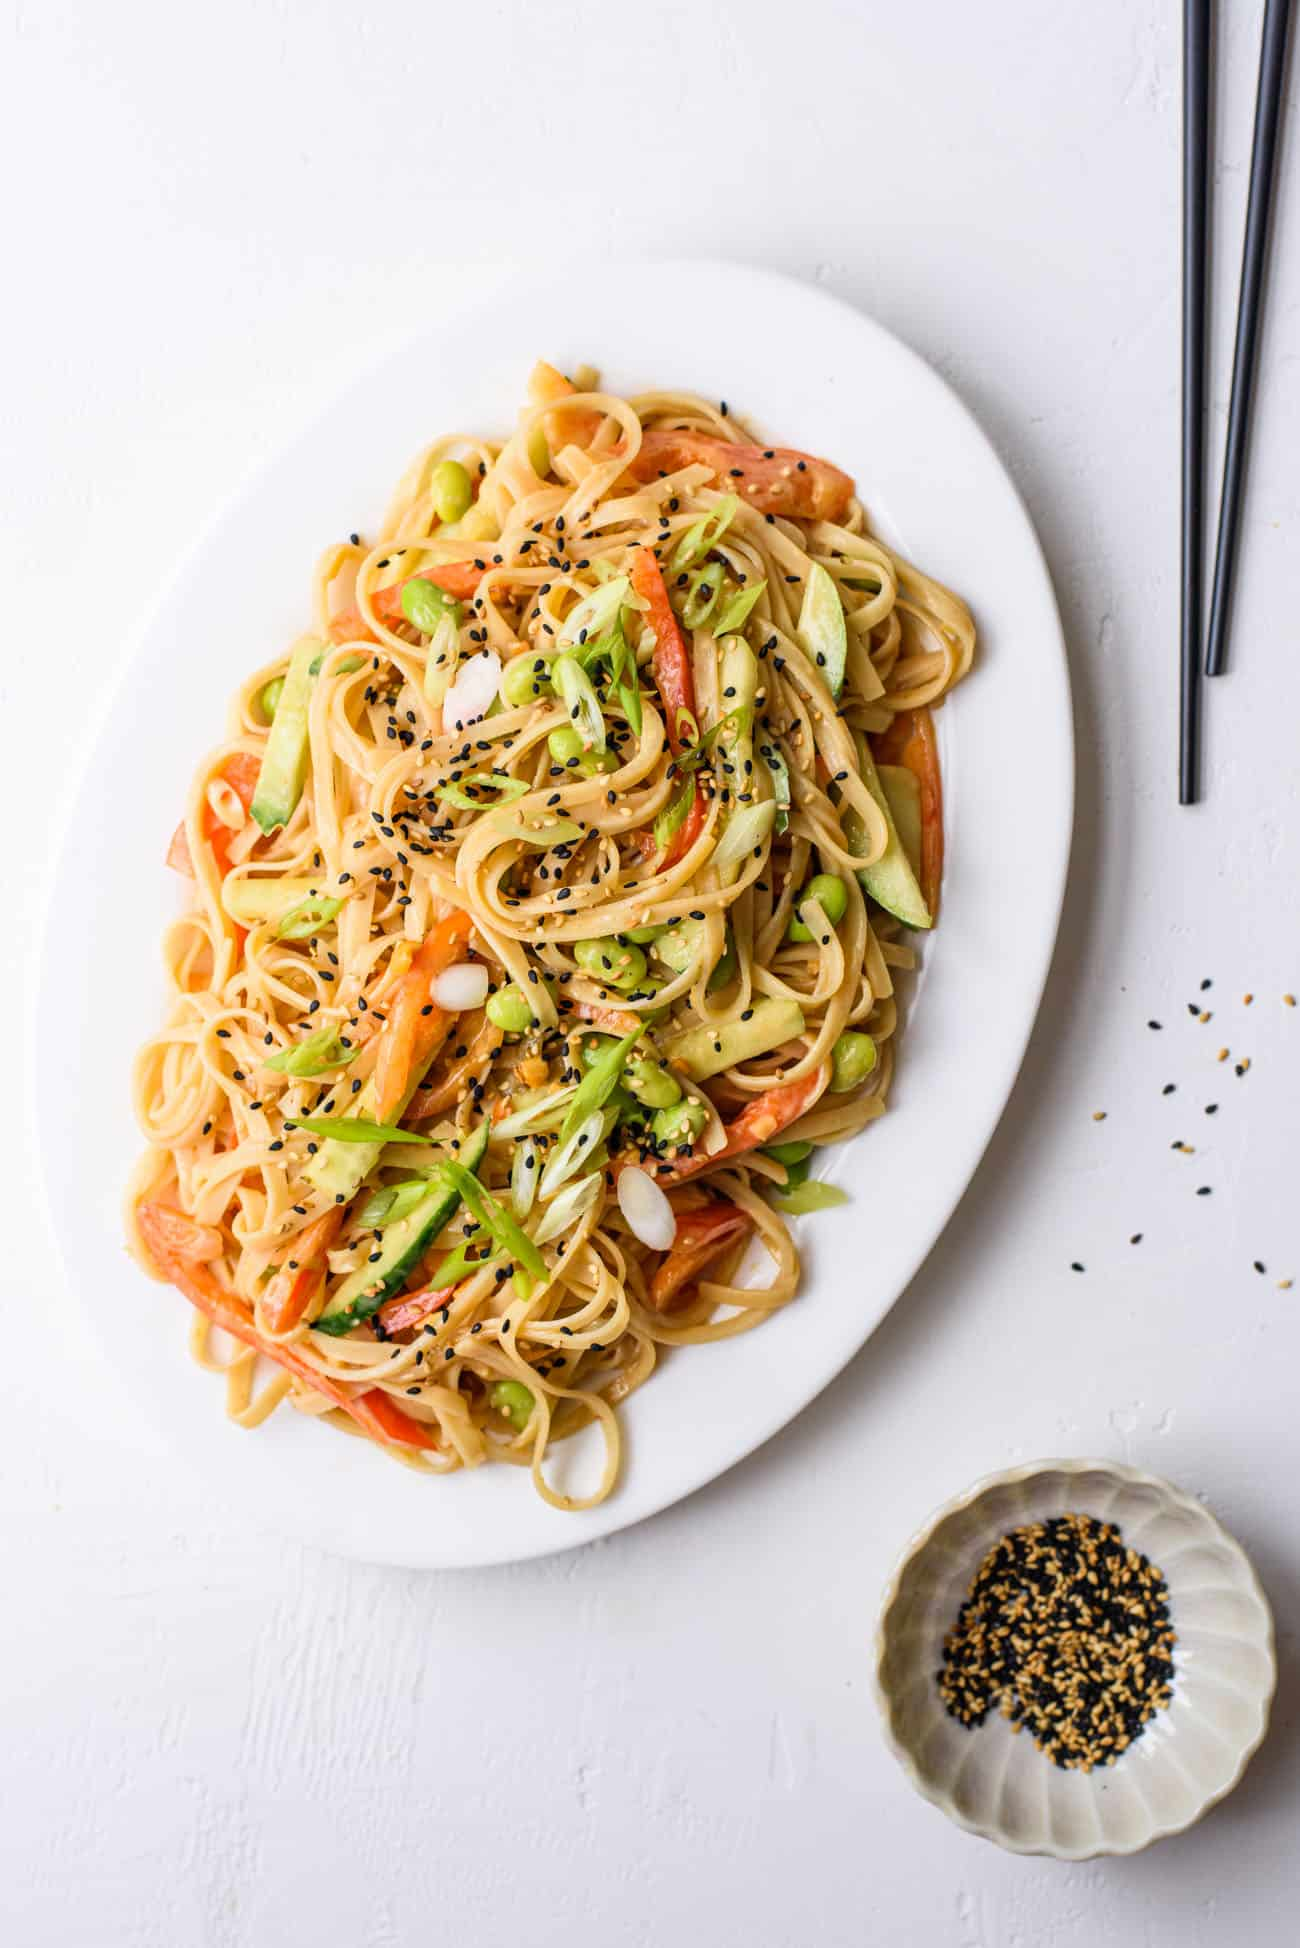 Cold peanut noodle salad with cucumbers, bell peppers, and edamame on a white oval platter on a white table next to chopsticks